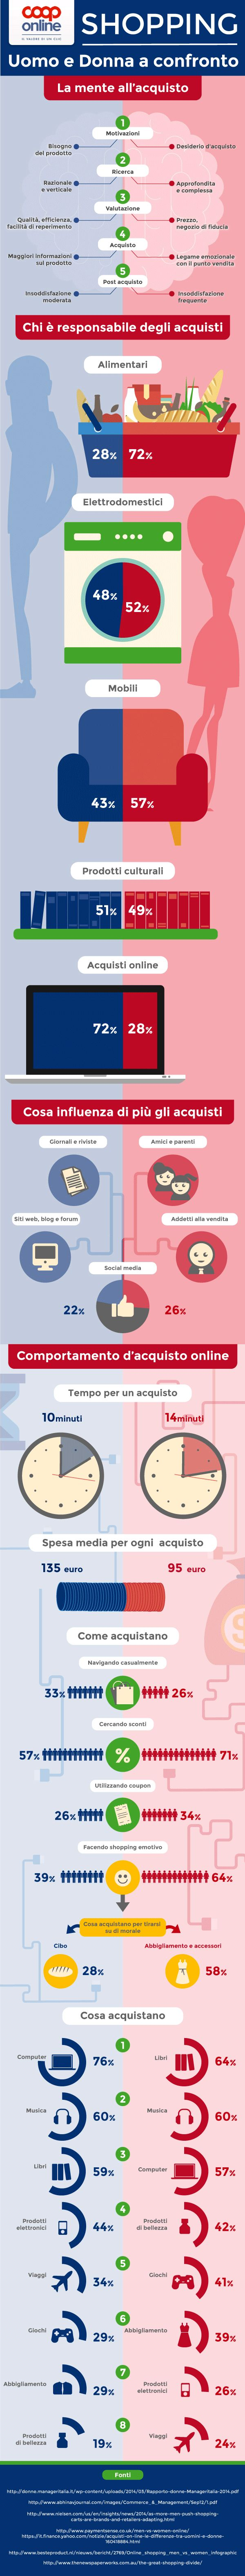 Shopping online, le differenze tra uomo e donna #ecommerce